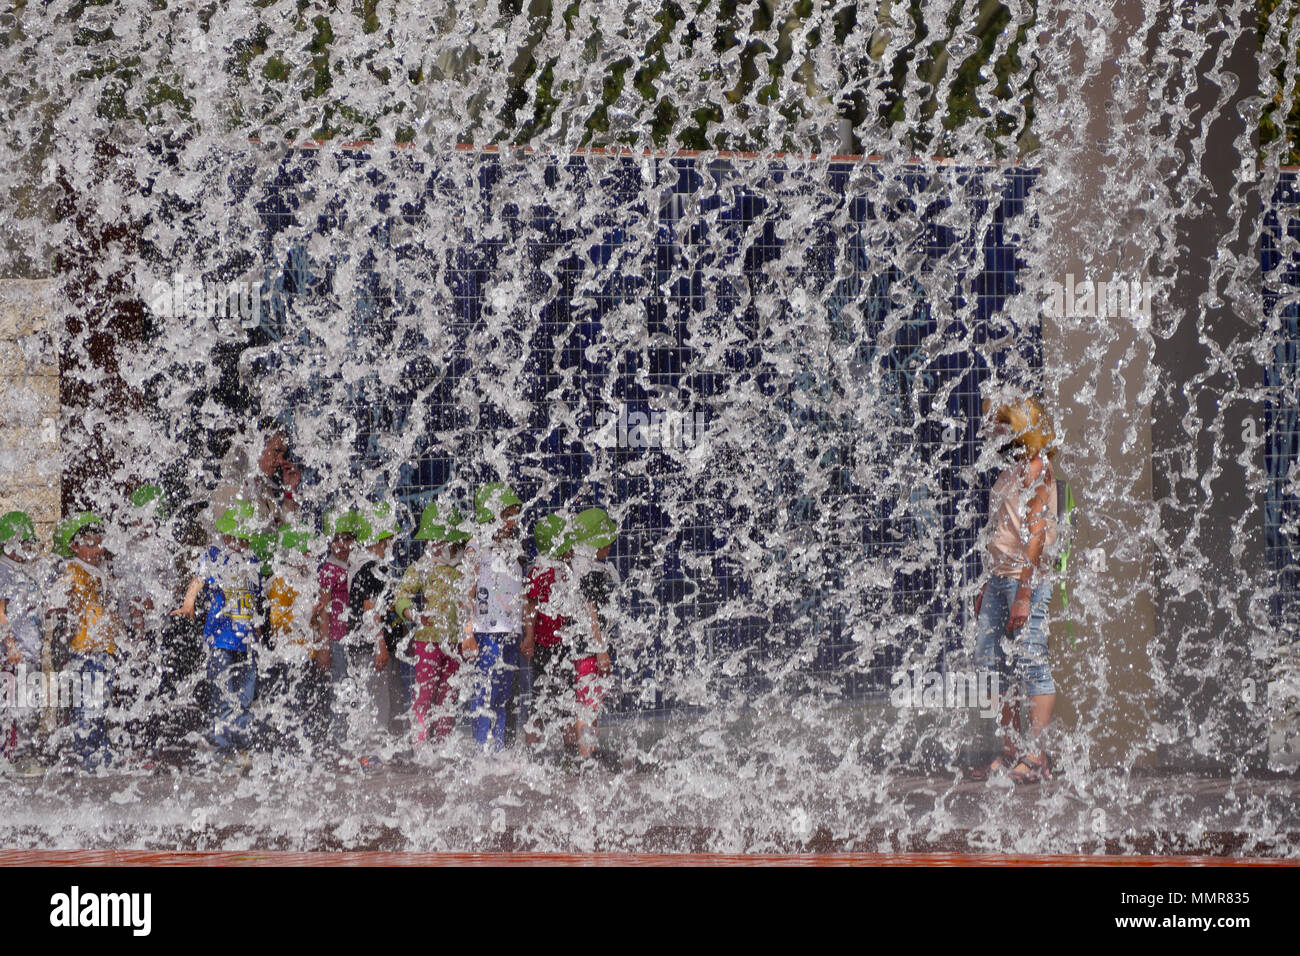 People standing behind a water curtain, in Park of the Nations district, Lisbon, Portugal - Stock Image